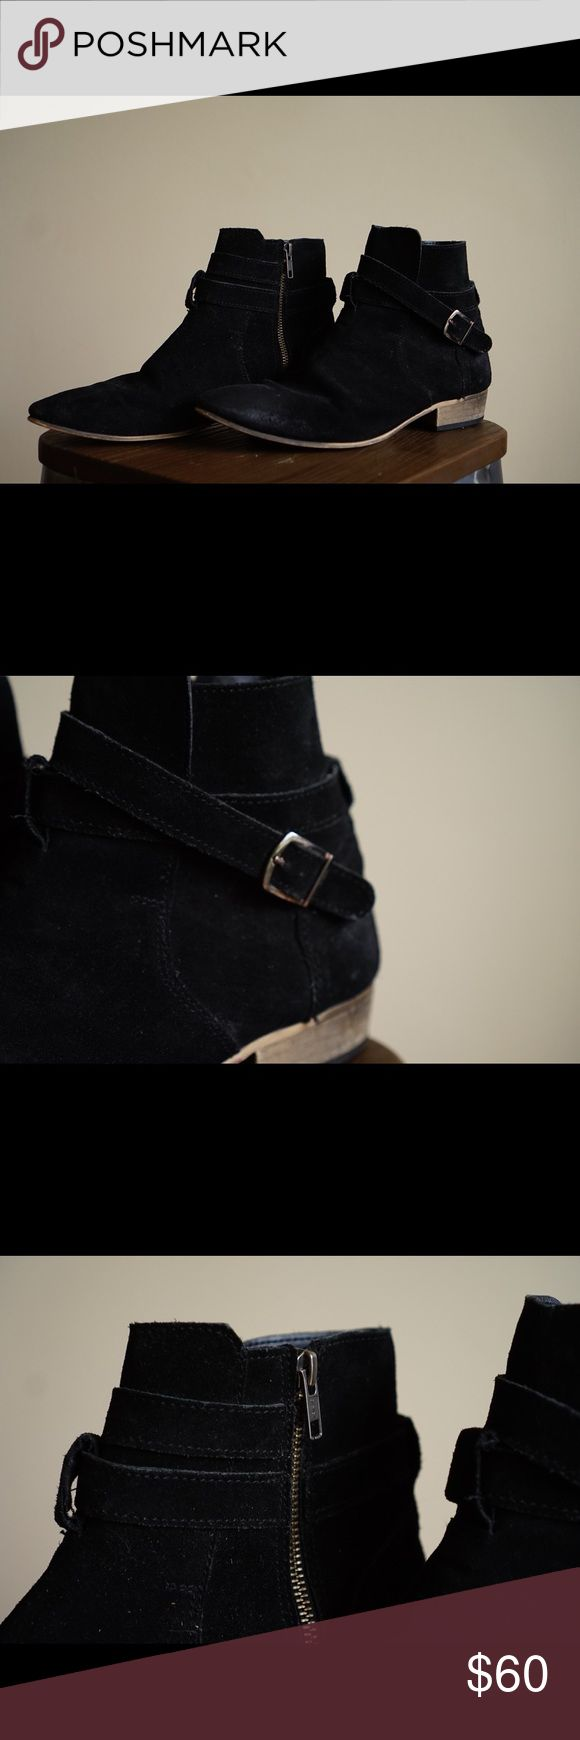 Topman Black Chelsea Boots Black Chelsea boots with buckle and zippers Topman Shoes Boots